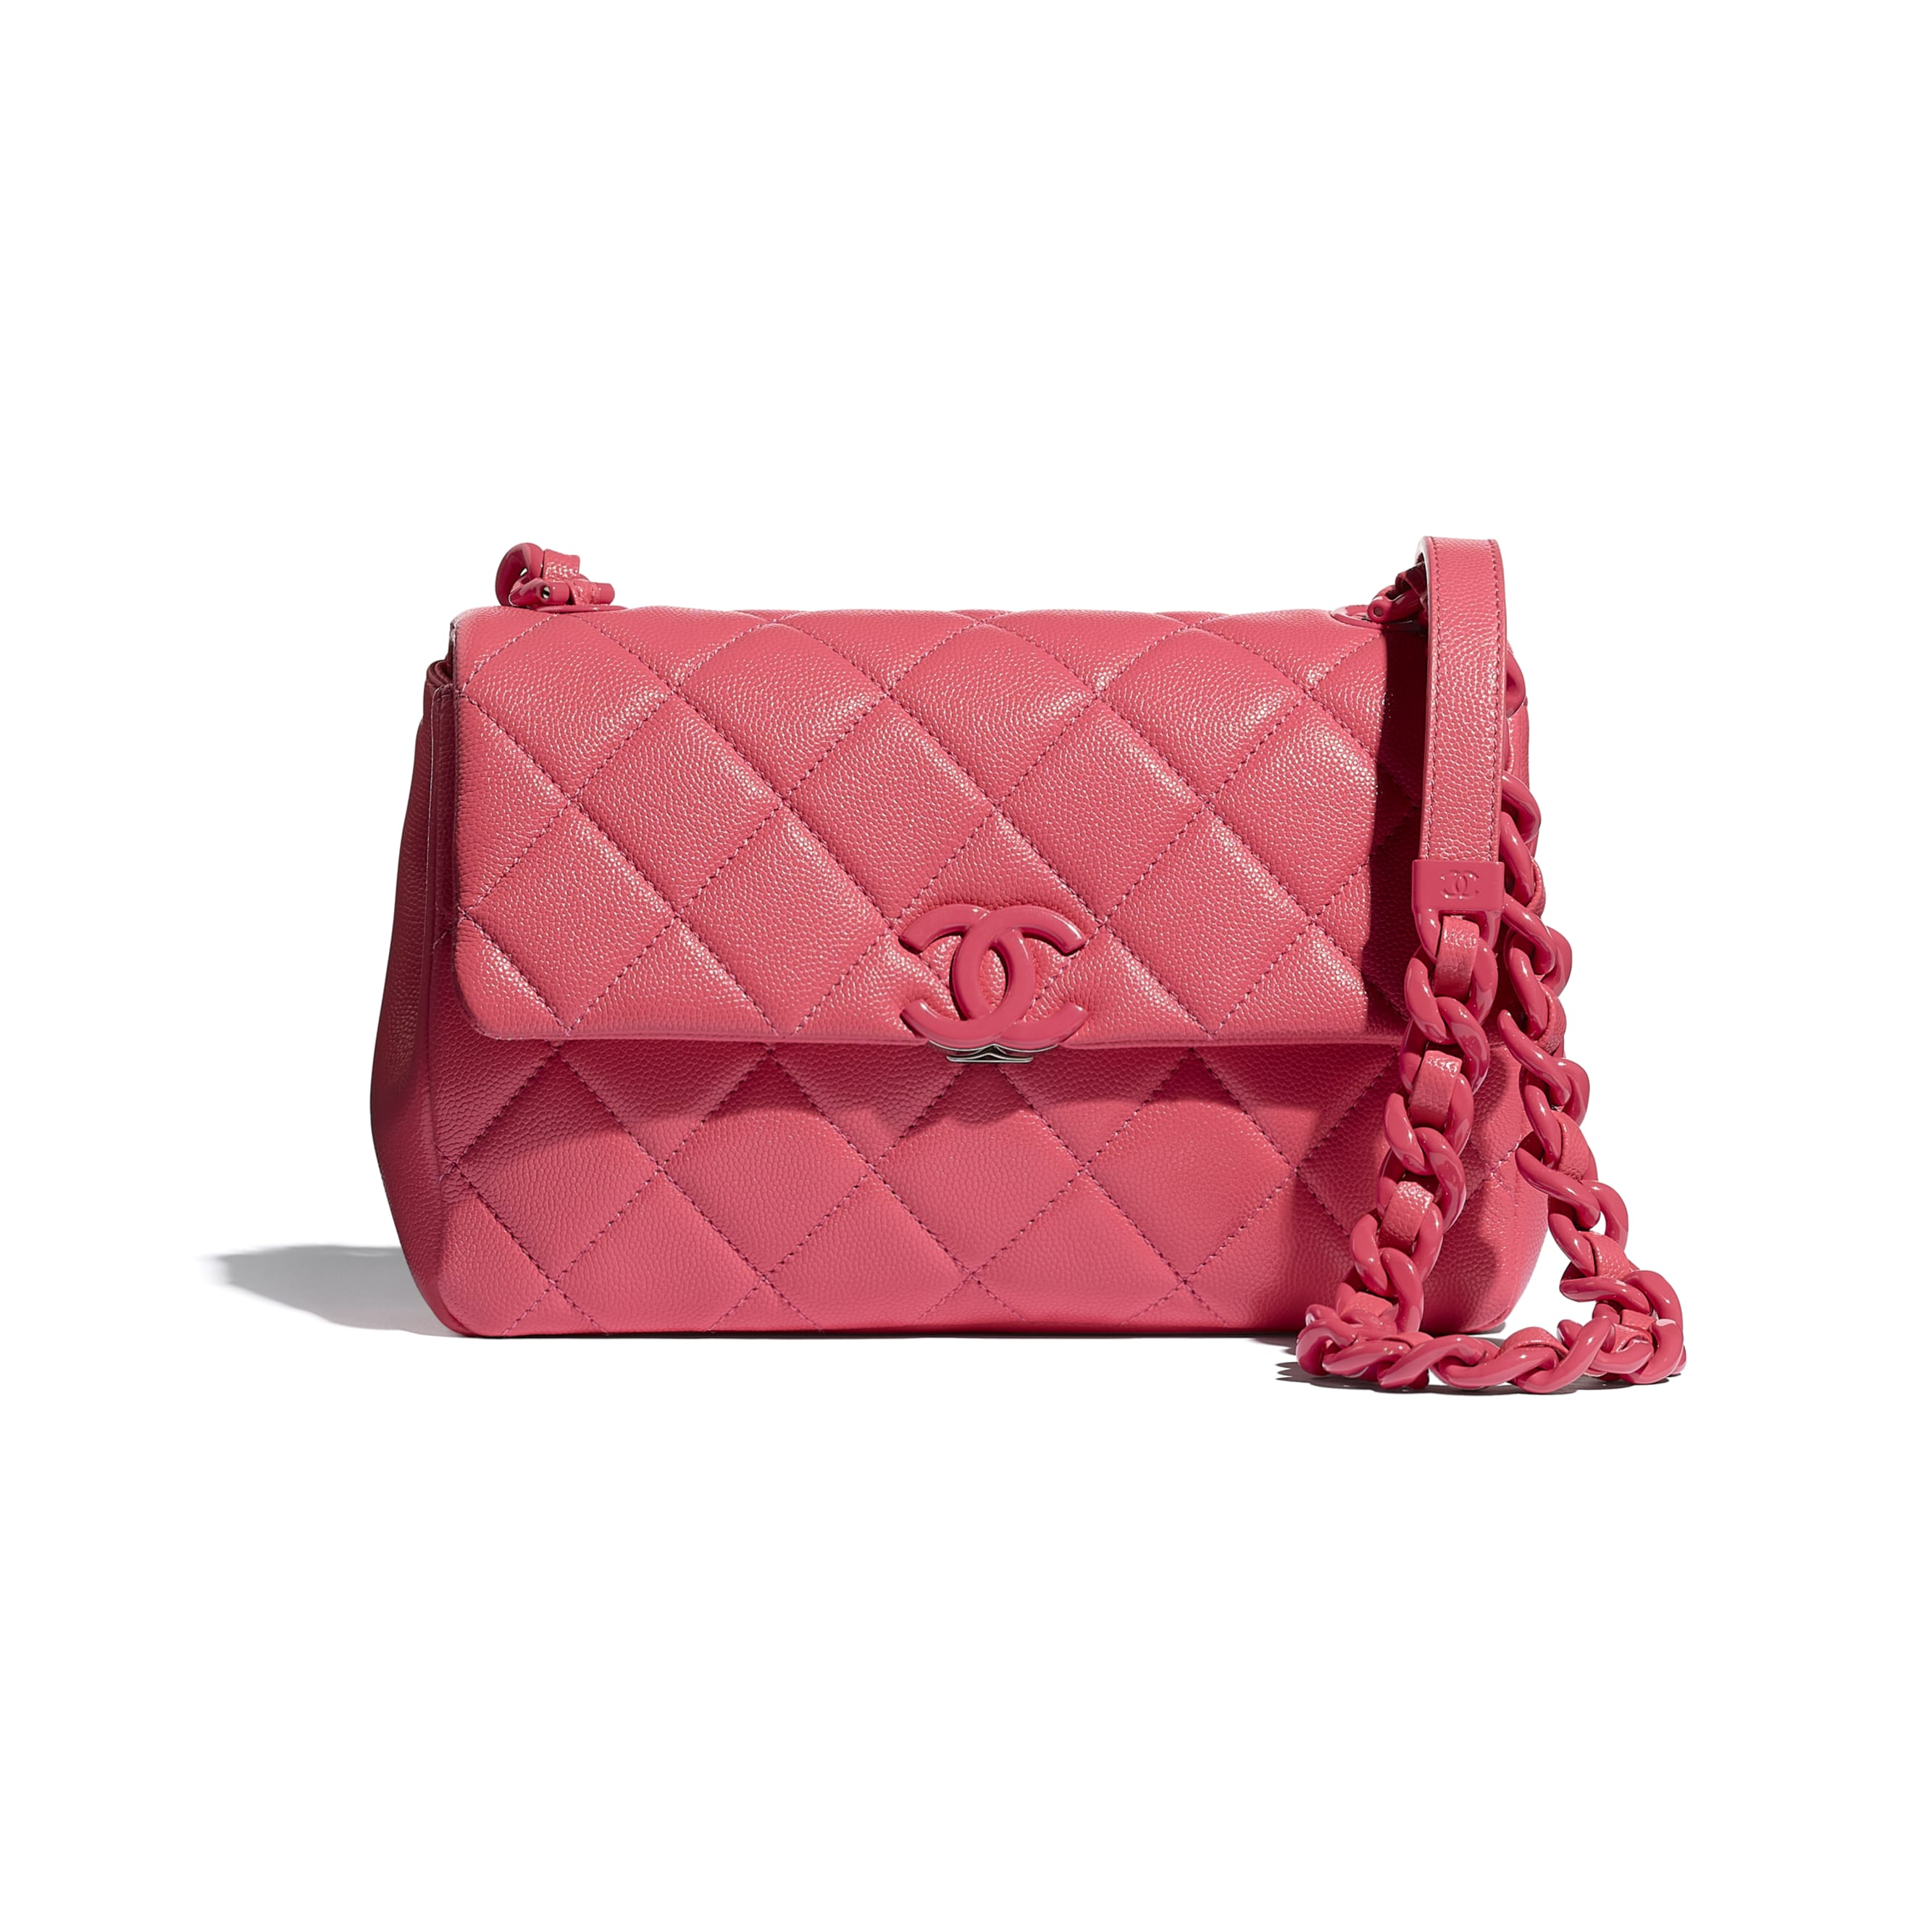 Flap Bag - Coral - Grained Calfskin & Lacquered Metal - CHANEL - Default view - see standard sized version